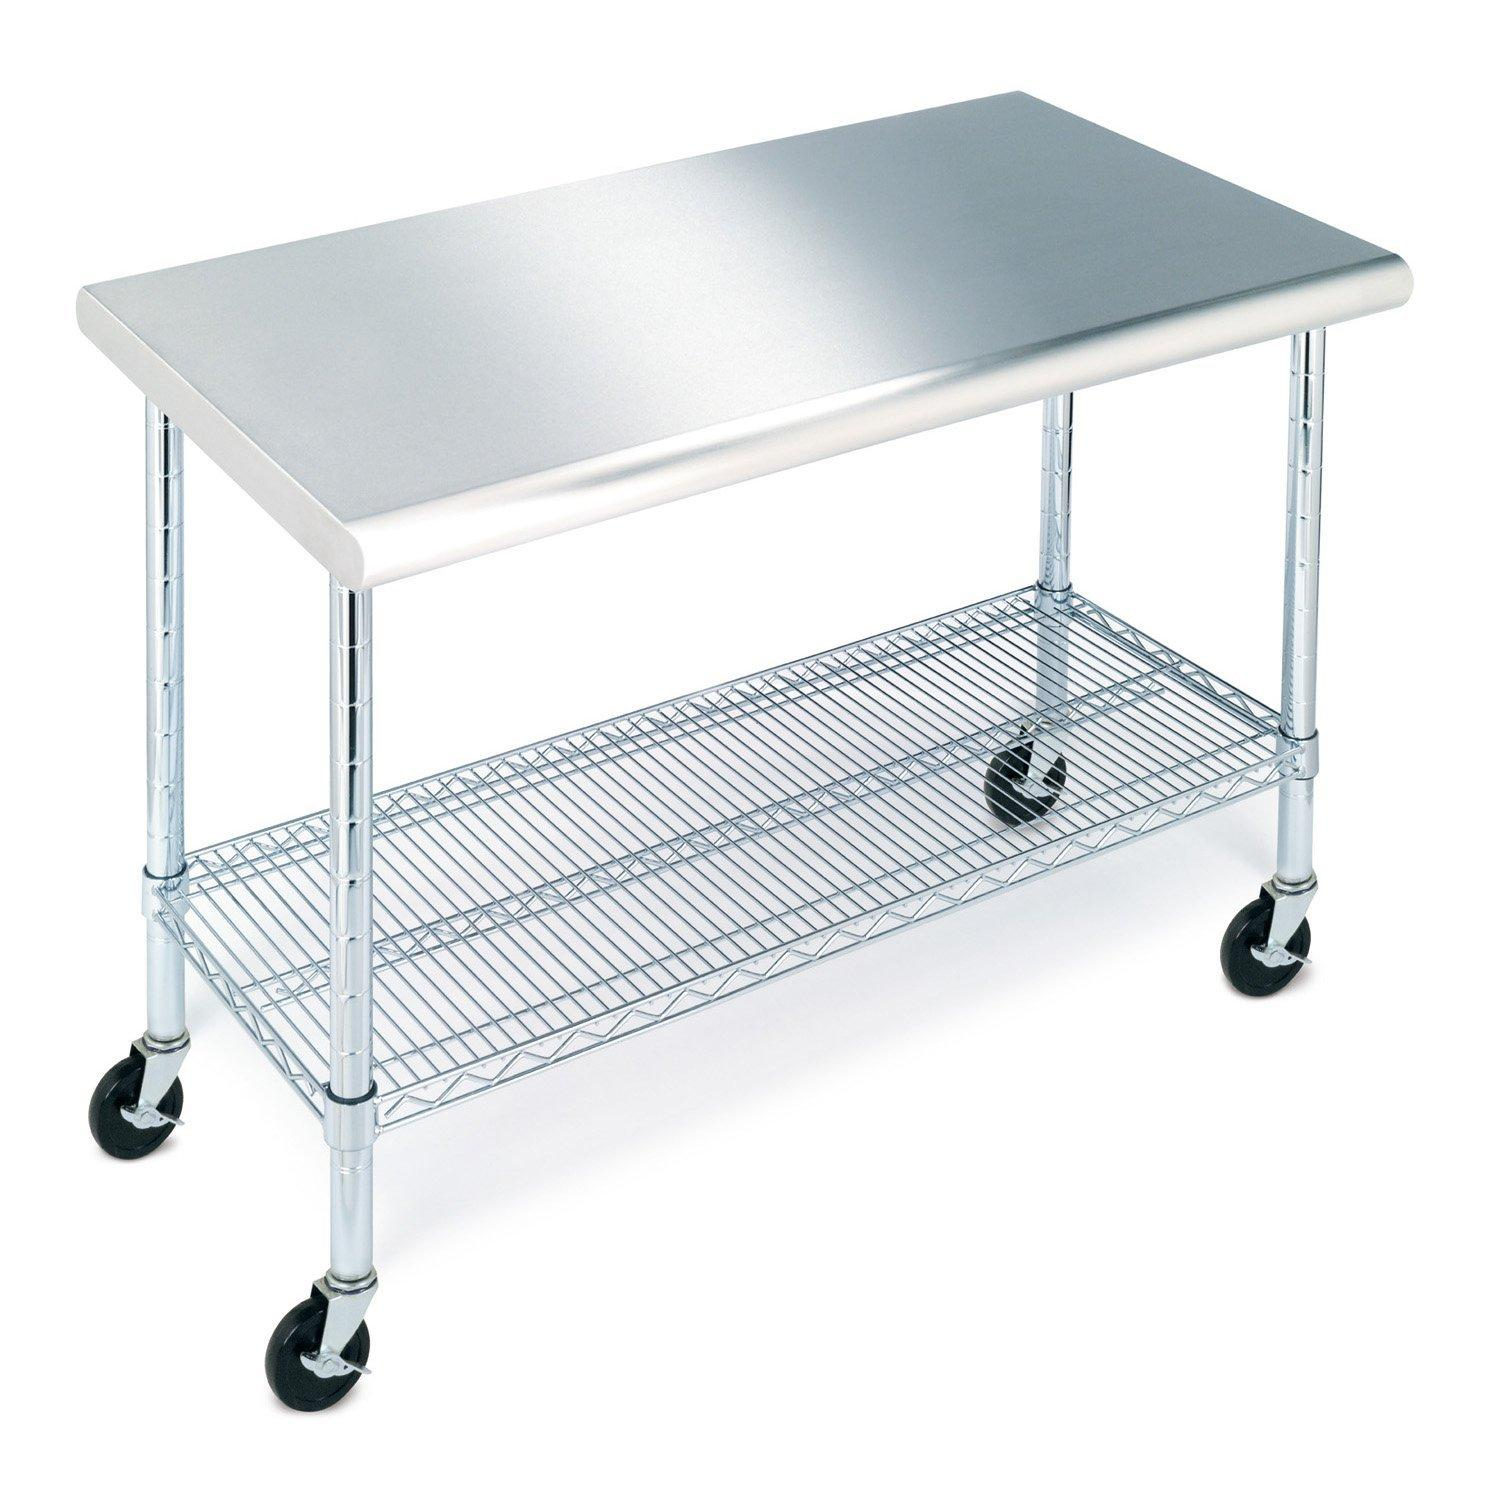 Amazoncom Seville Classics SHEWH Commercial NSF Stainless - Stainless steel work table with casters